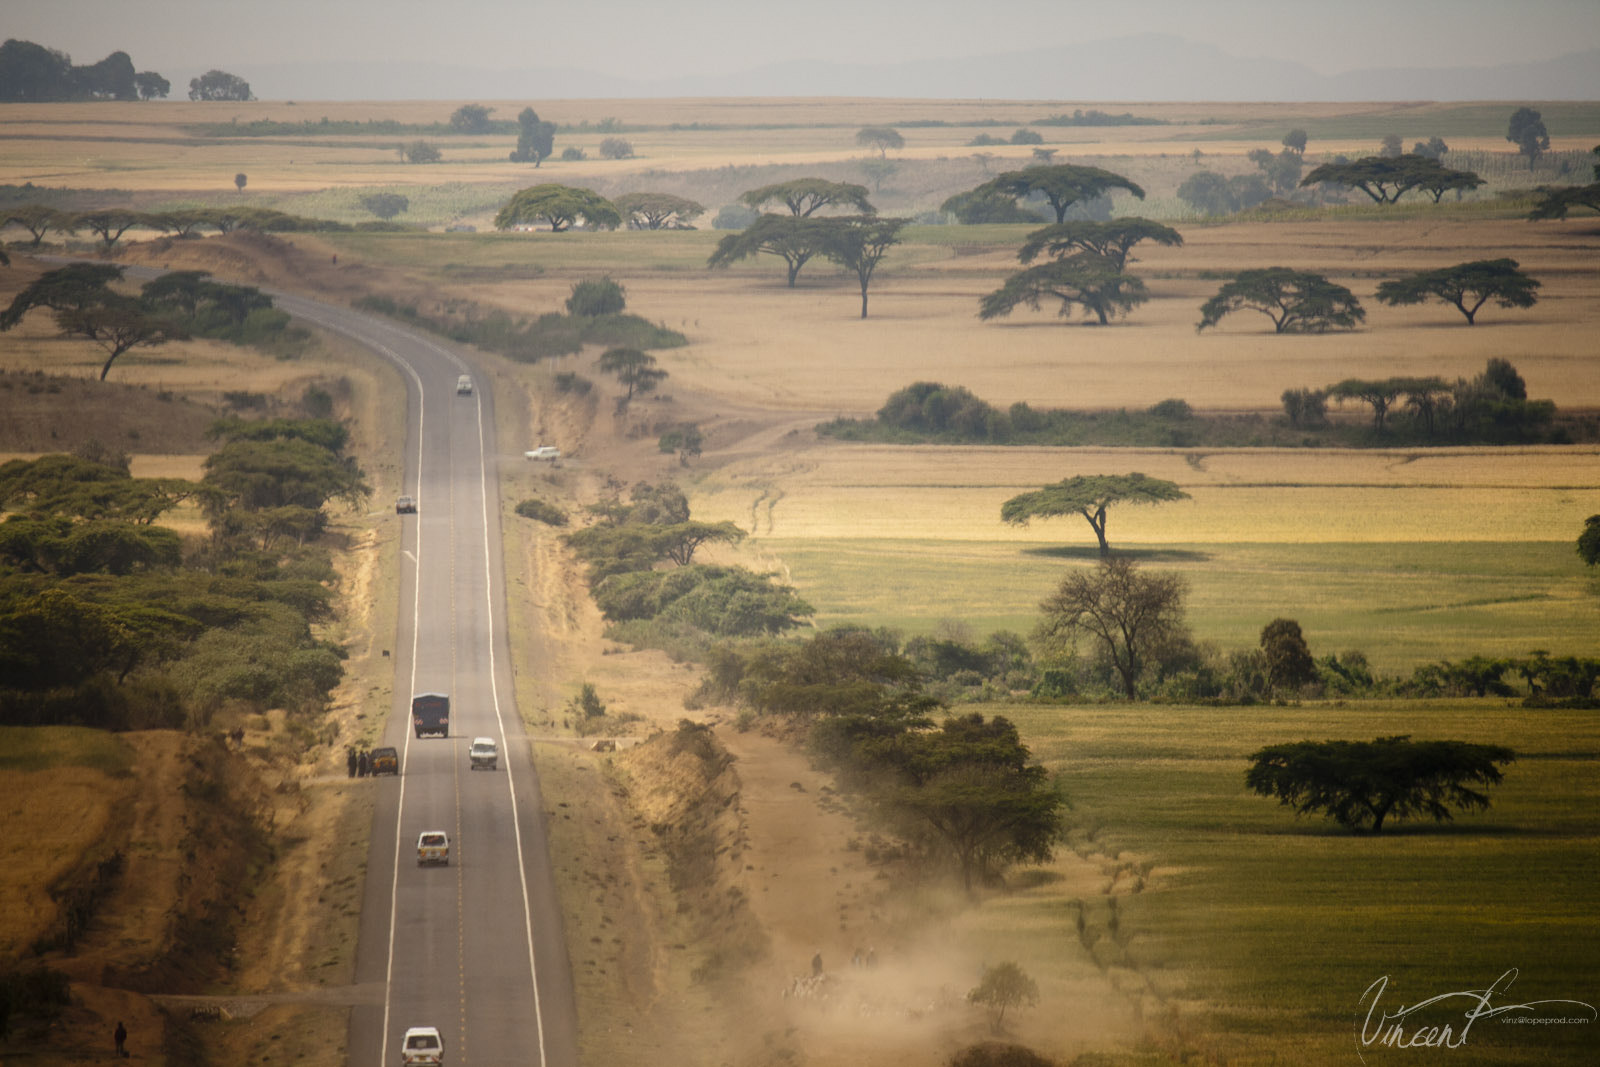 Photograph Road in Kenya by Vinz zounet on 500px